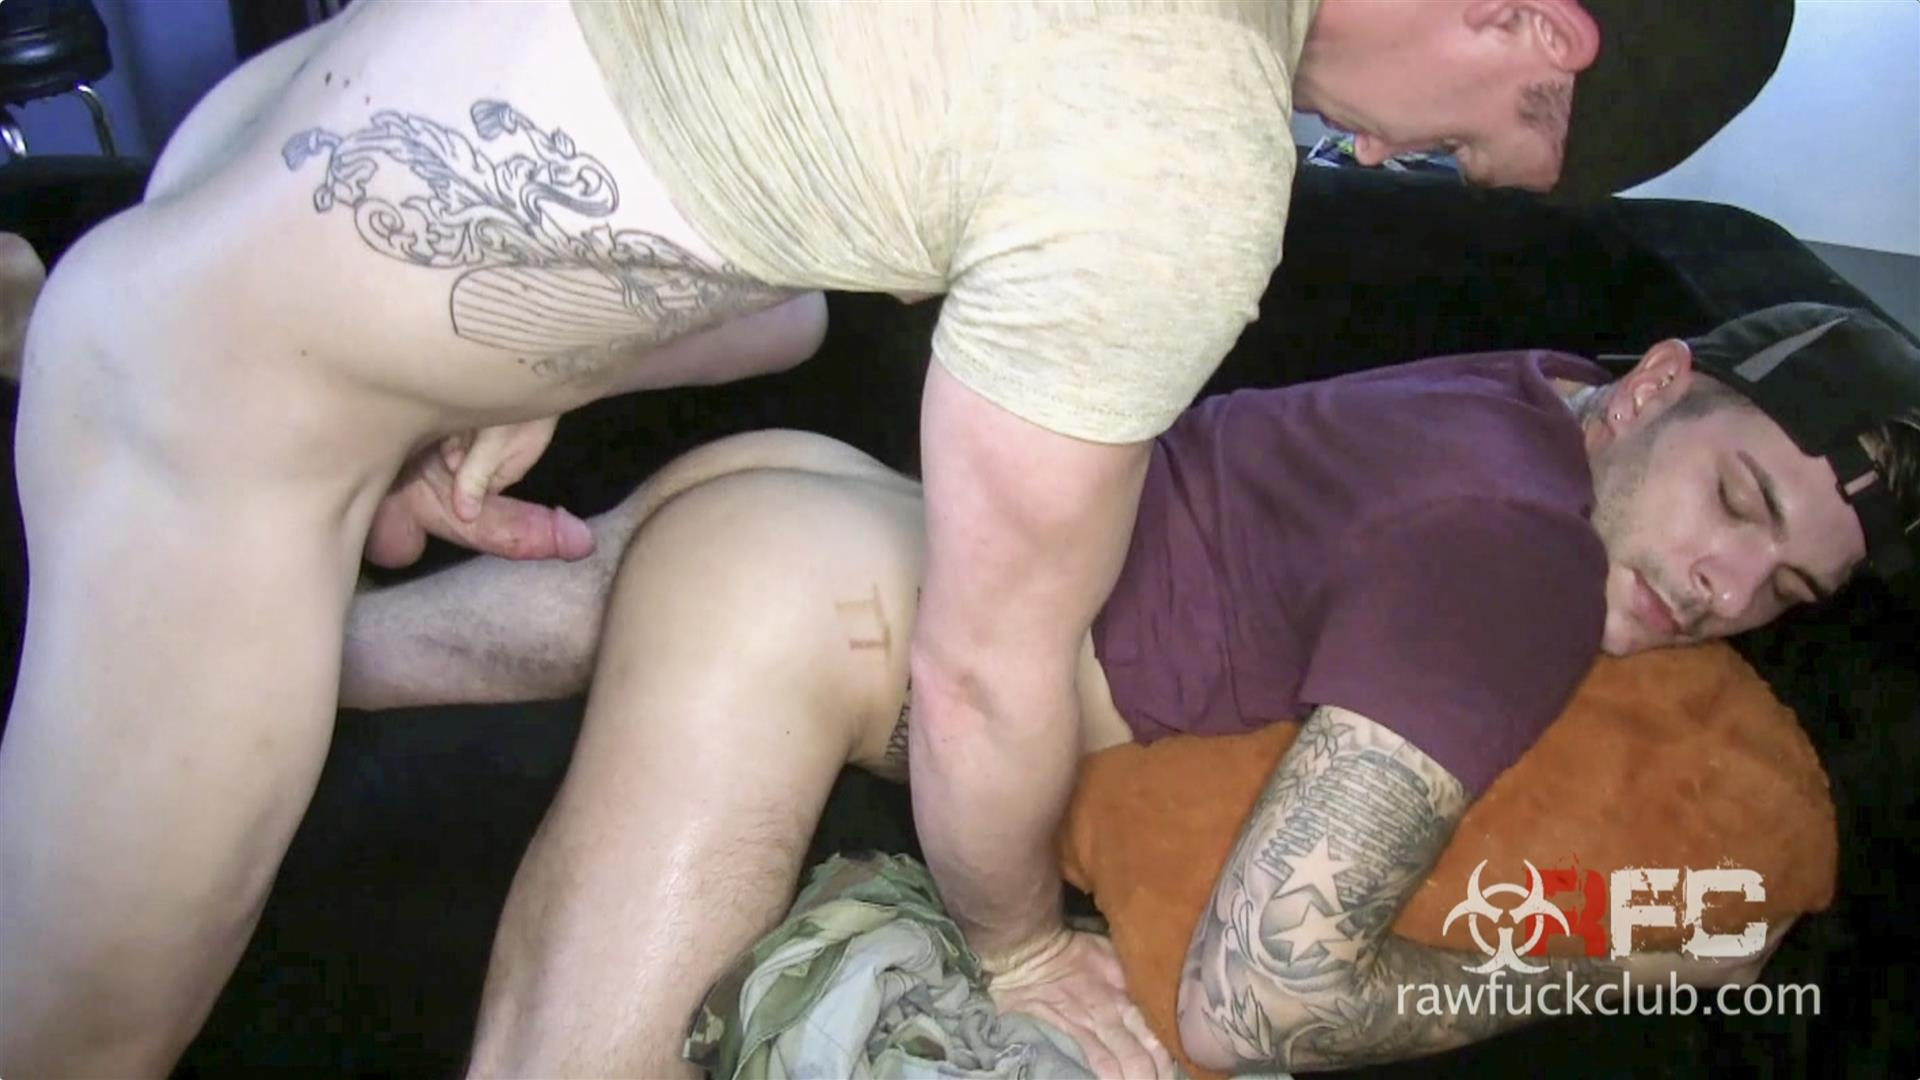 Raw-Fuck-Club-Alessio-Ribiero-Hairy-Ass-Bareback-Fuck-Amateur-Gay-Porn-03 Picking Up A Drunk Trick At The Club And Fucking Him Raw